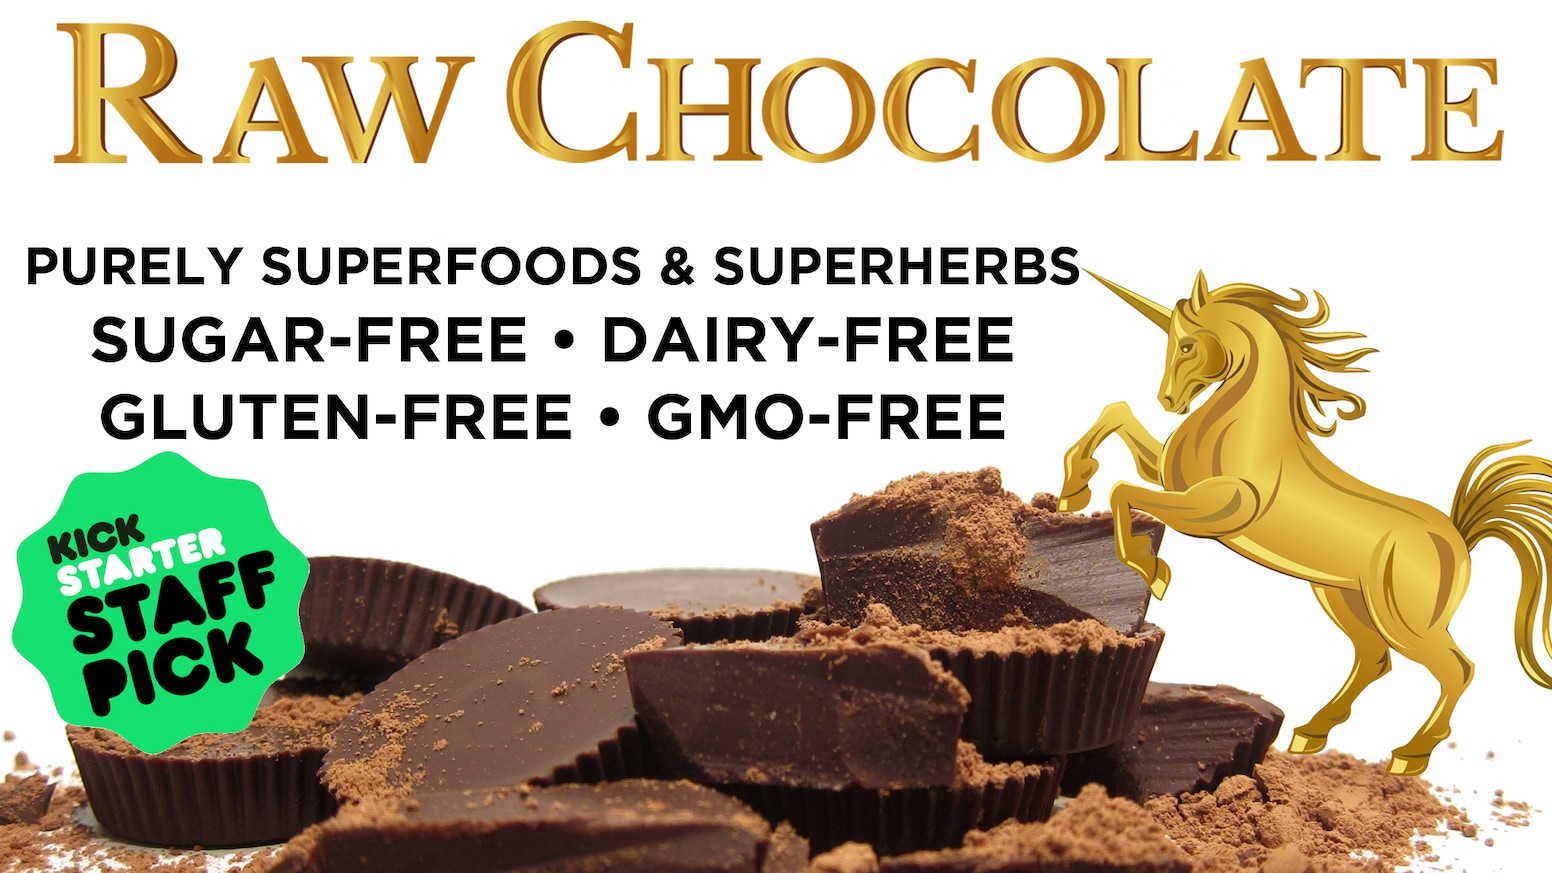 Raw vegan chocolate free of sugar, gluten, GMOs, soy, and nuts.  Specific superherbs for different functions! By Addictive Wellness